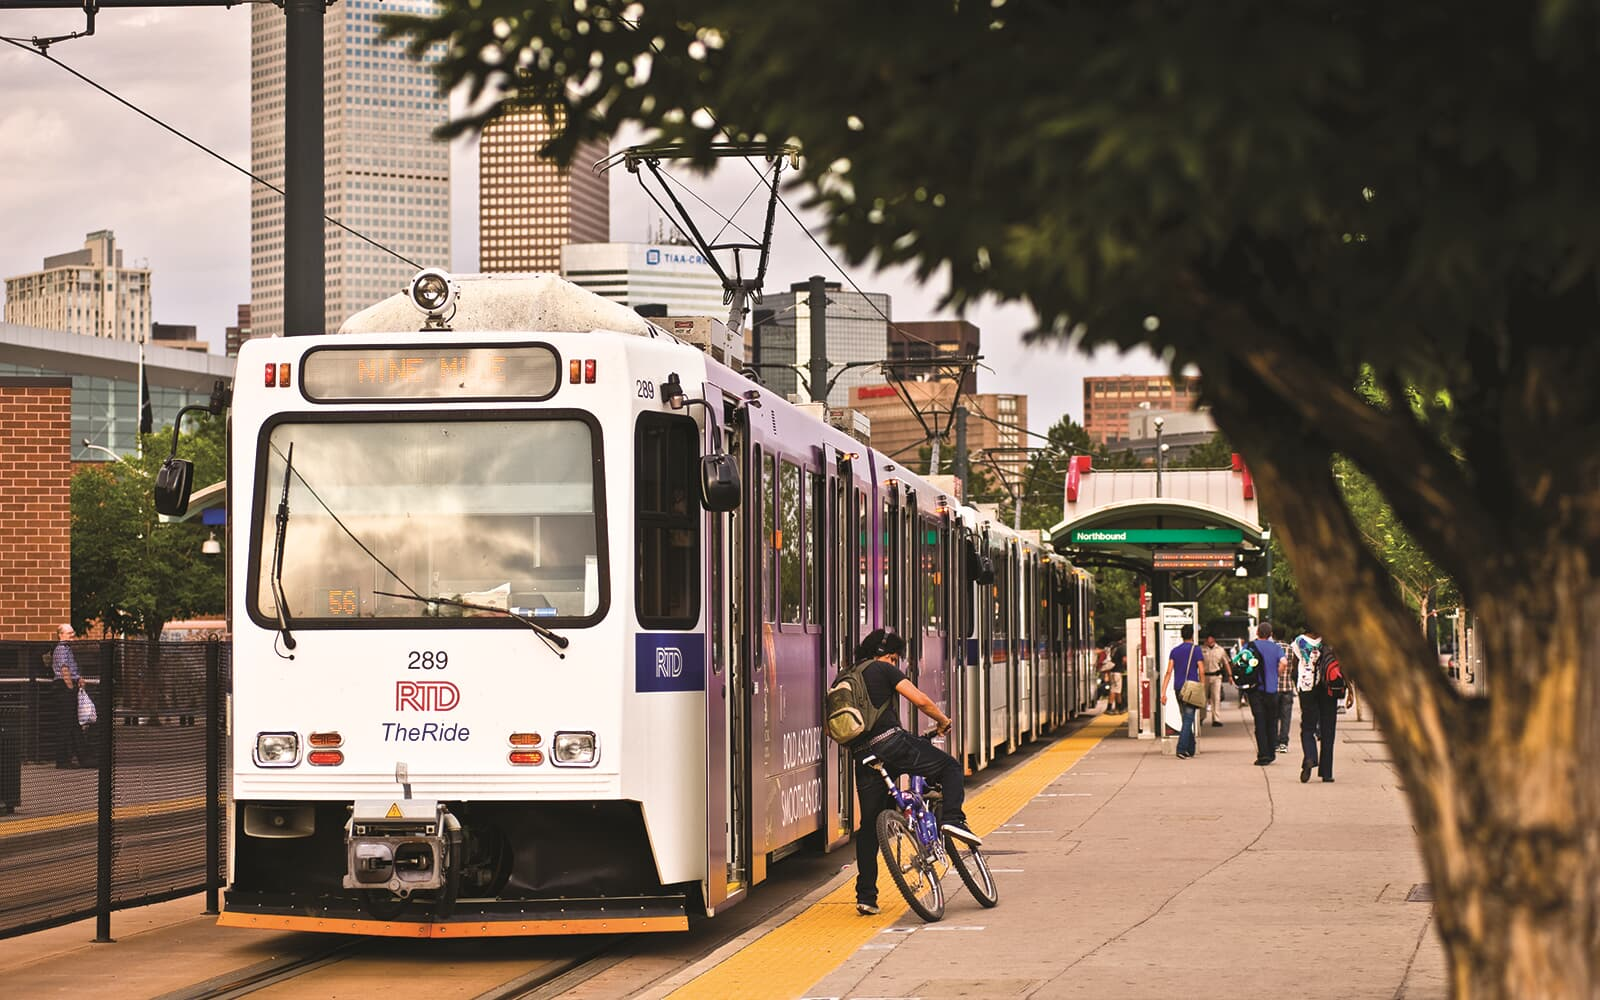 Colfax-RTD-Lightrail-Lifestyle-Midtown-Denver-Colorado